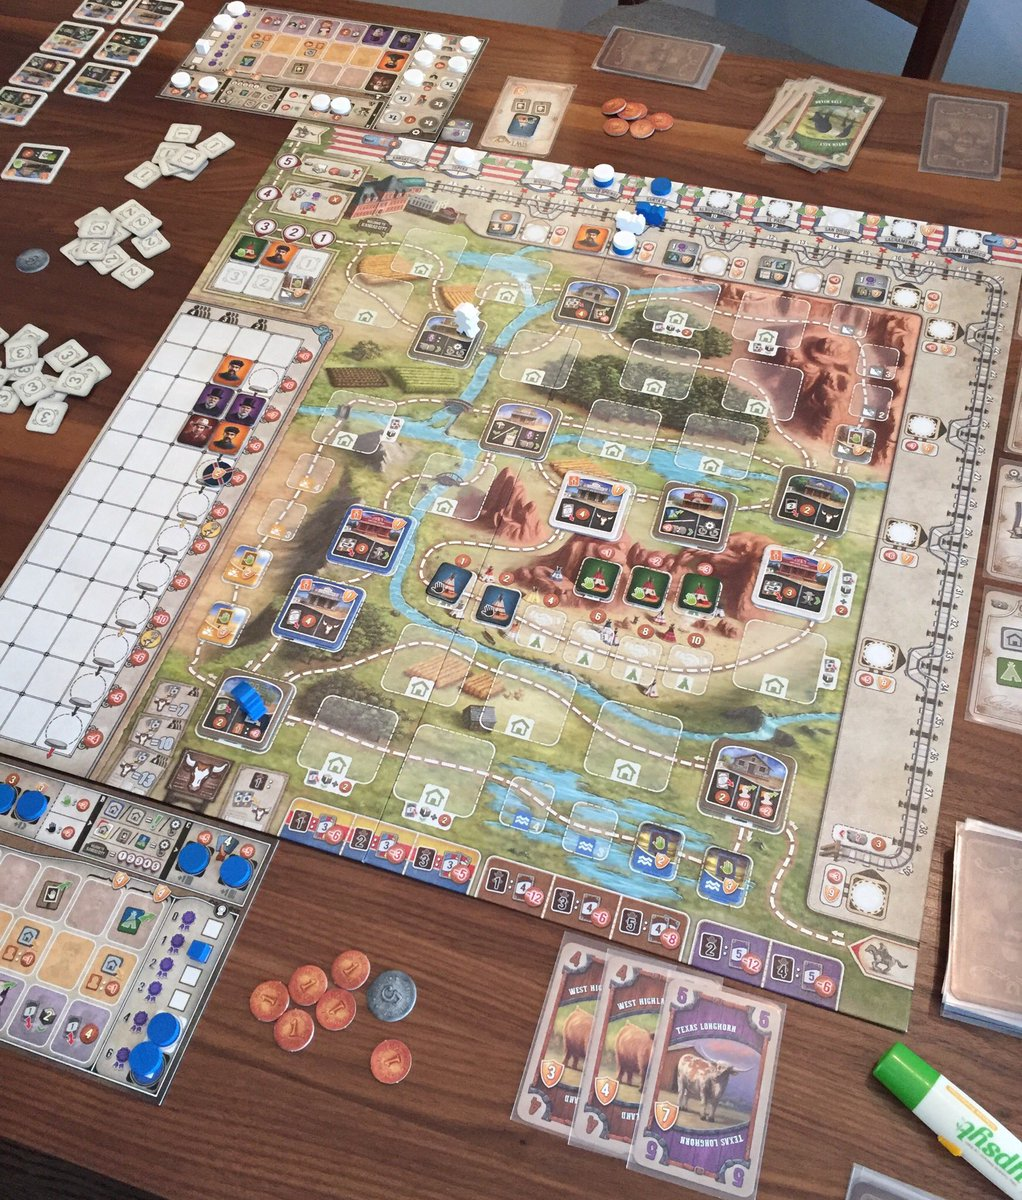 First plays of #GreatWesternTrail today. There's a LOT to think about in this game, that's coming from someone who loves Fields of Arle!  Second game went much smoother.  @StrongholdGames @AlexxPfister #boardgames #GWTpic.twitter.com/T2EvDIyJGy